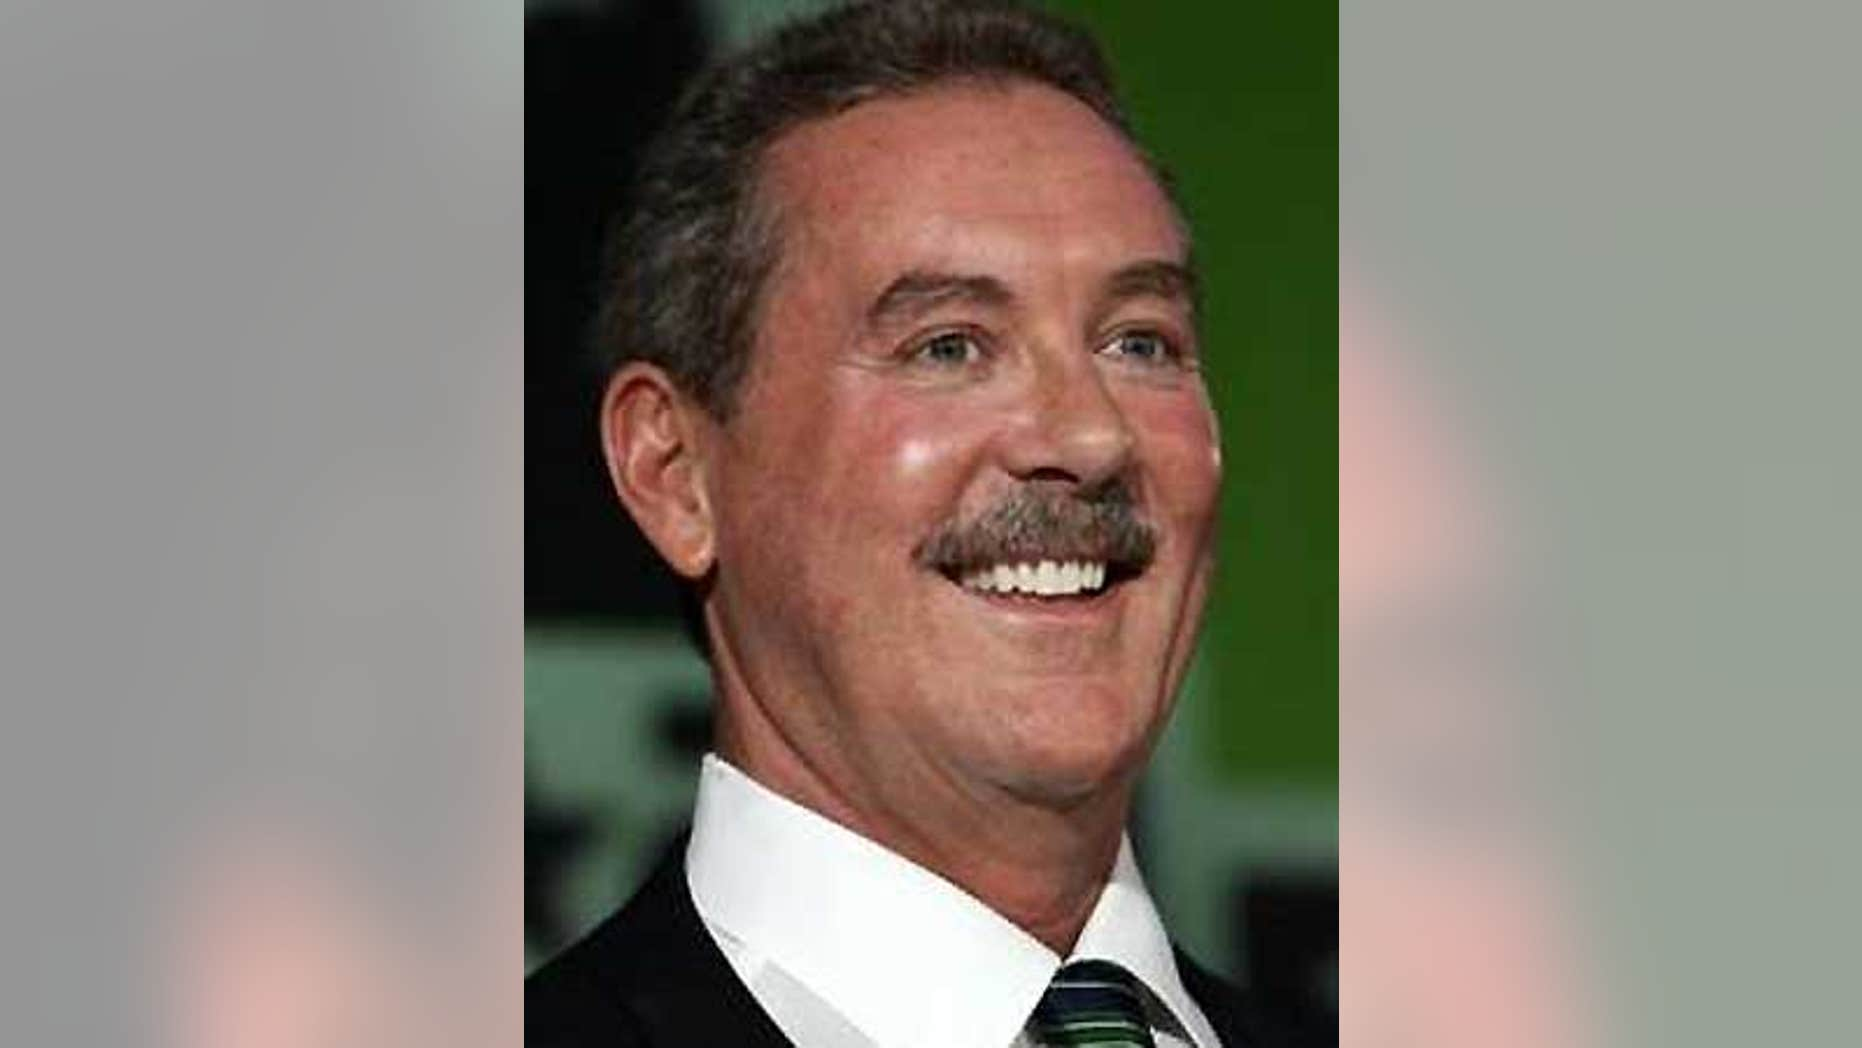 June 11, 2008: Sir R. Allen Stanford, poses for photos in London. Federal regulators on Feb. 17, 2009 charged Stanford with 'massive fraud.'